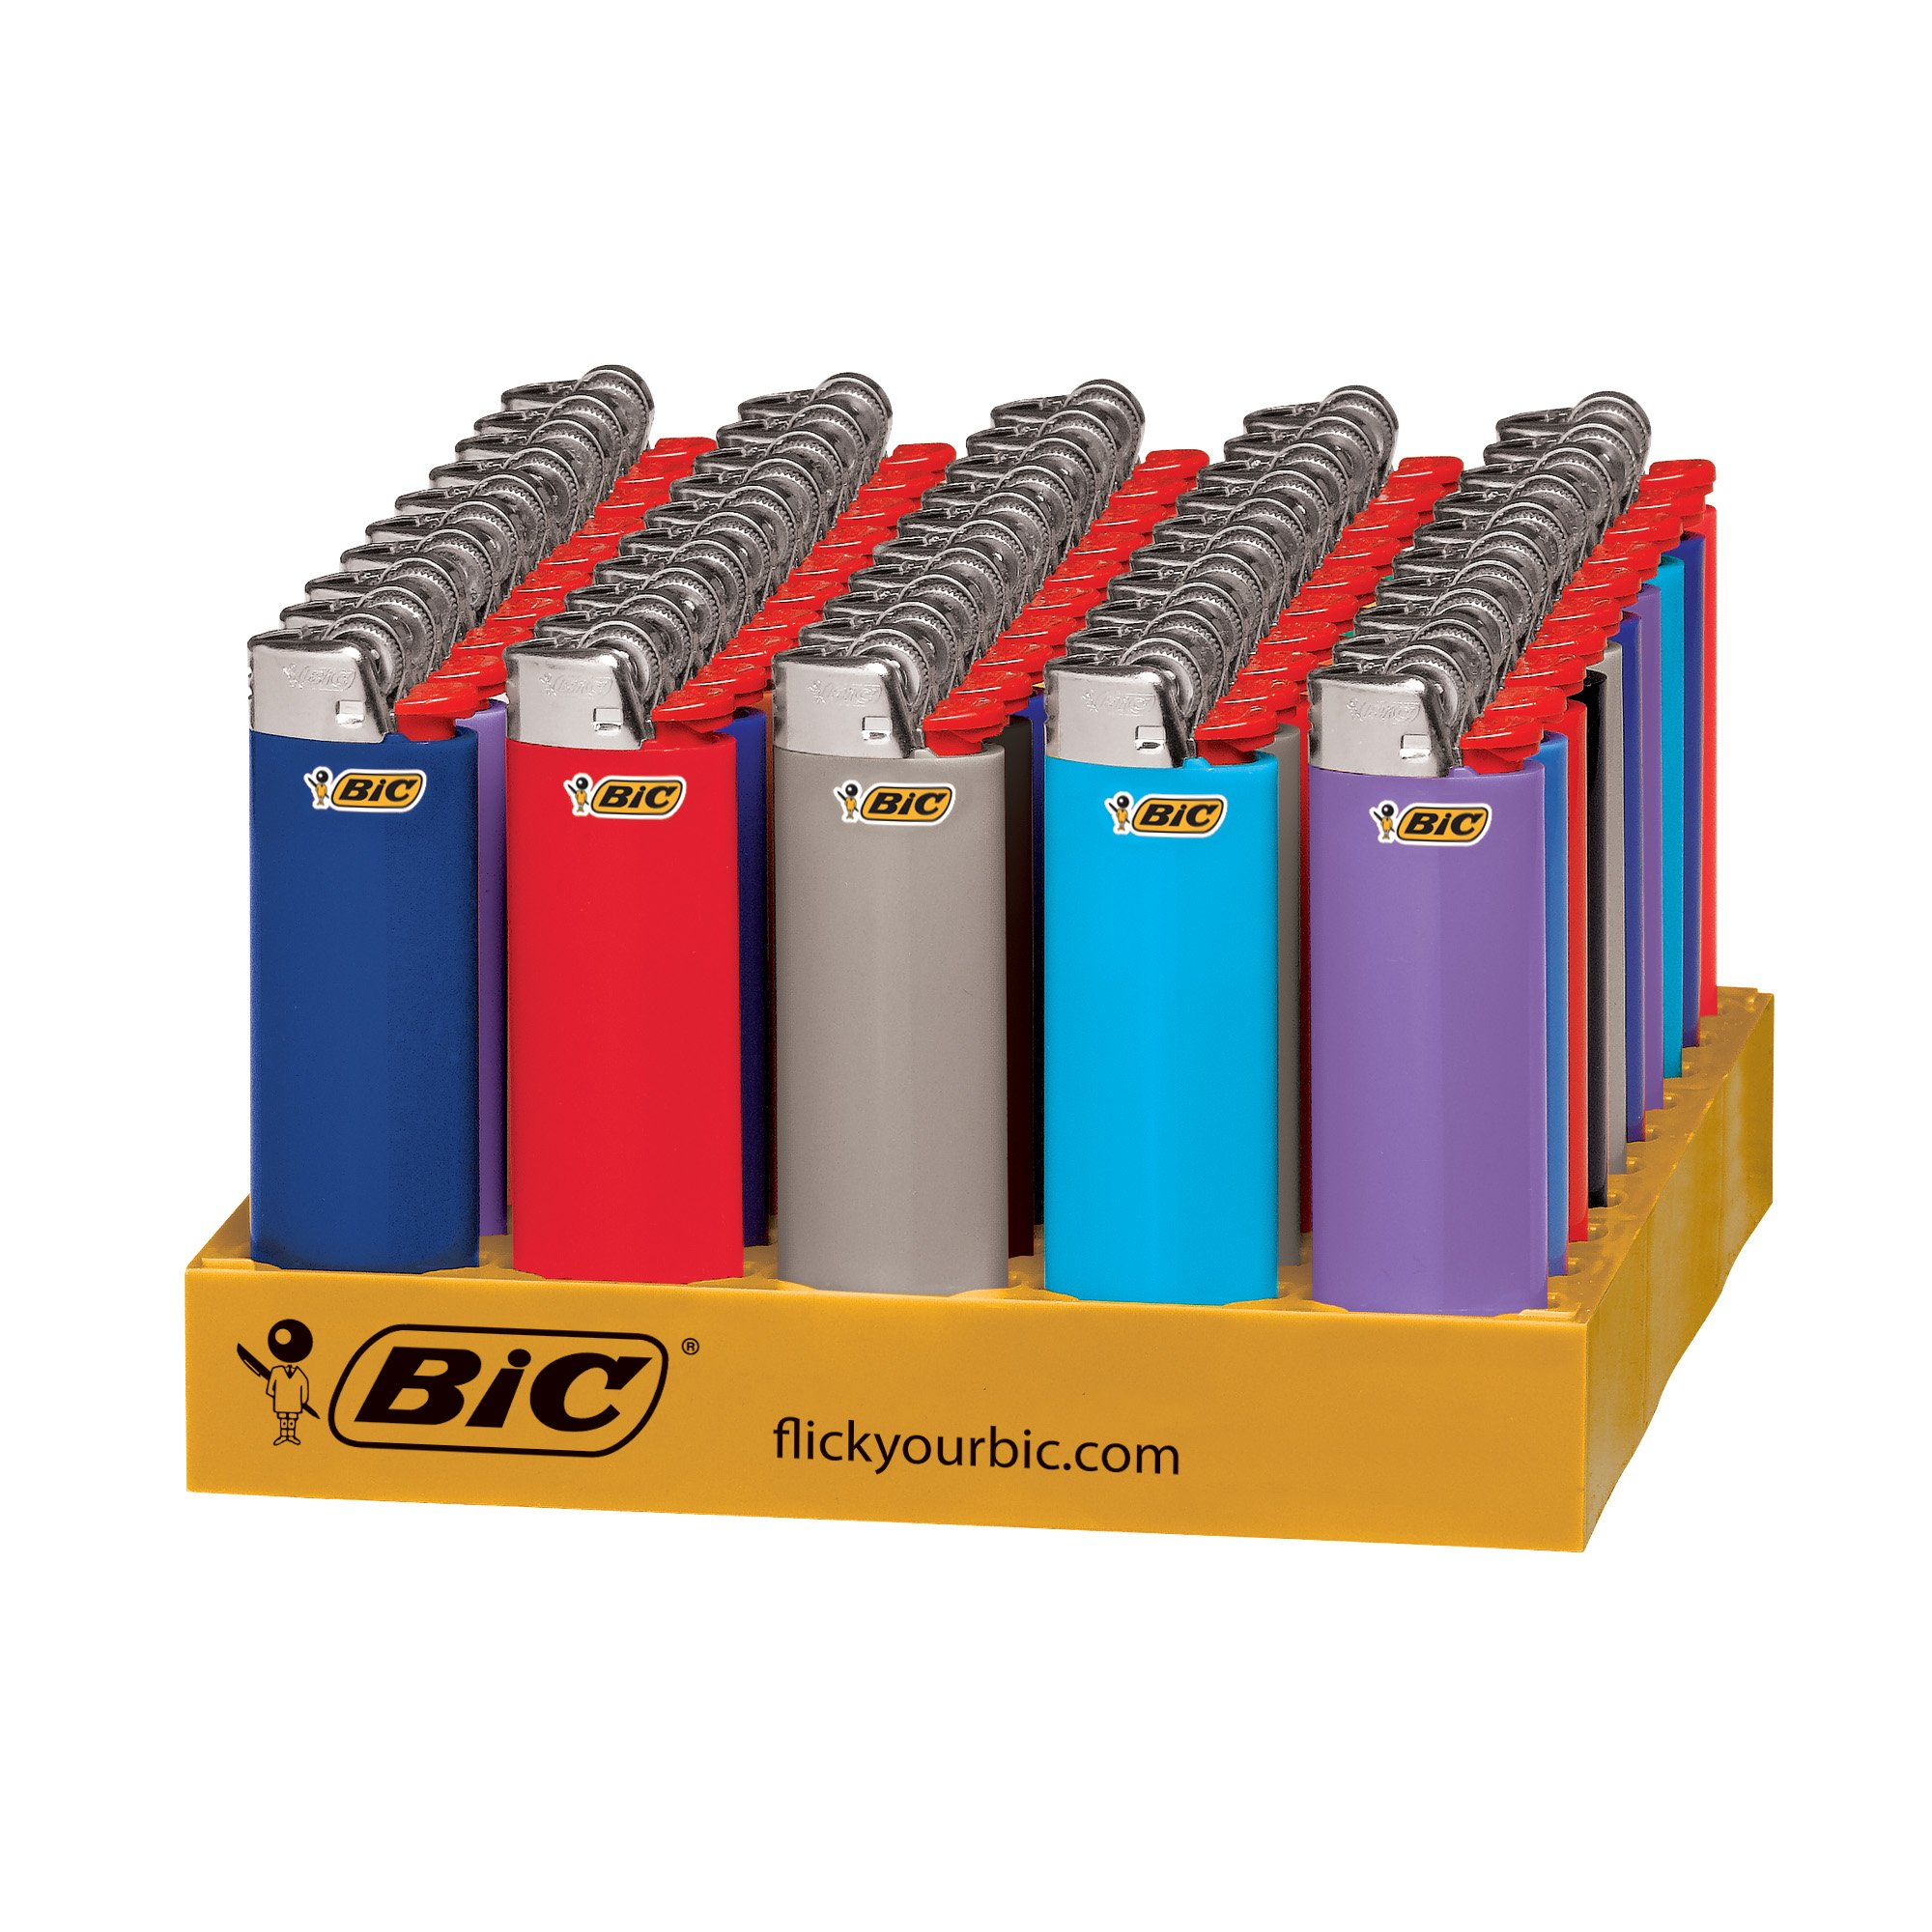 BIC Classic Lighter, Assorted Colors, 50-Count Tray by BIC